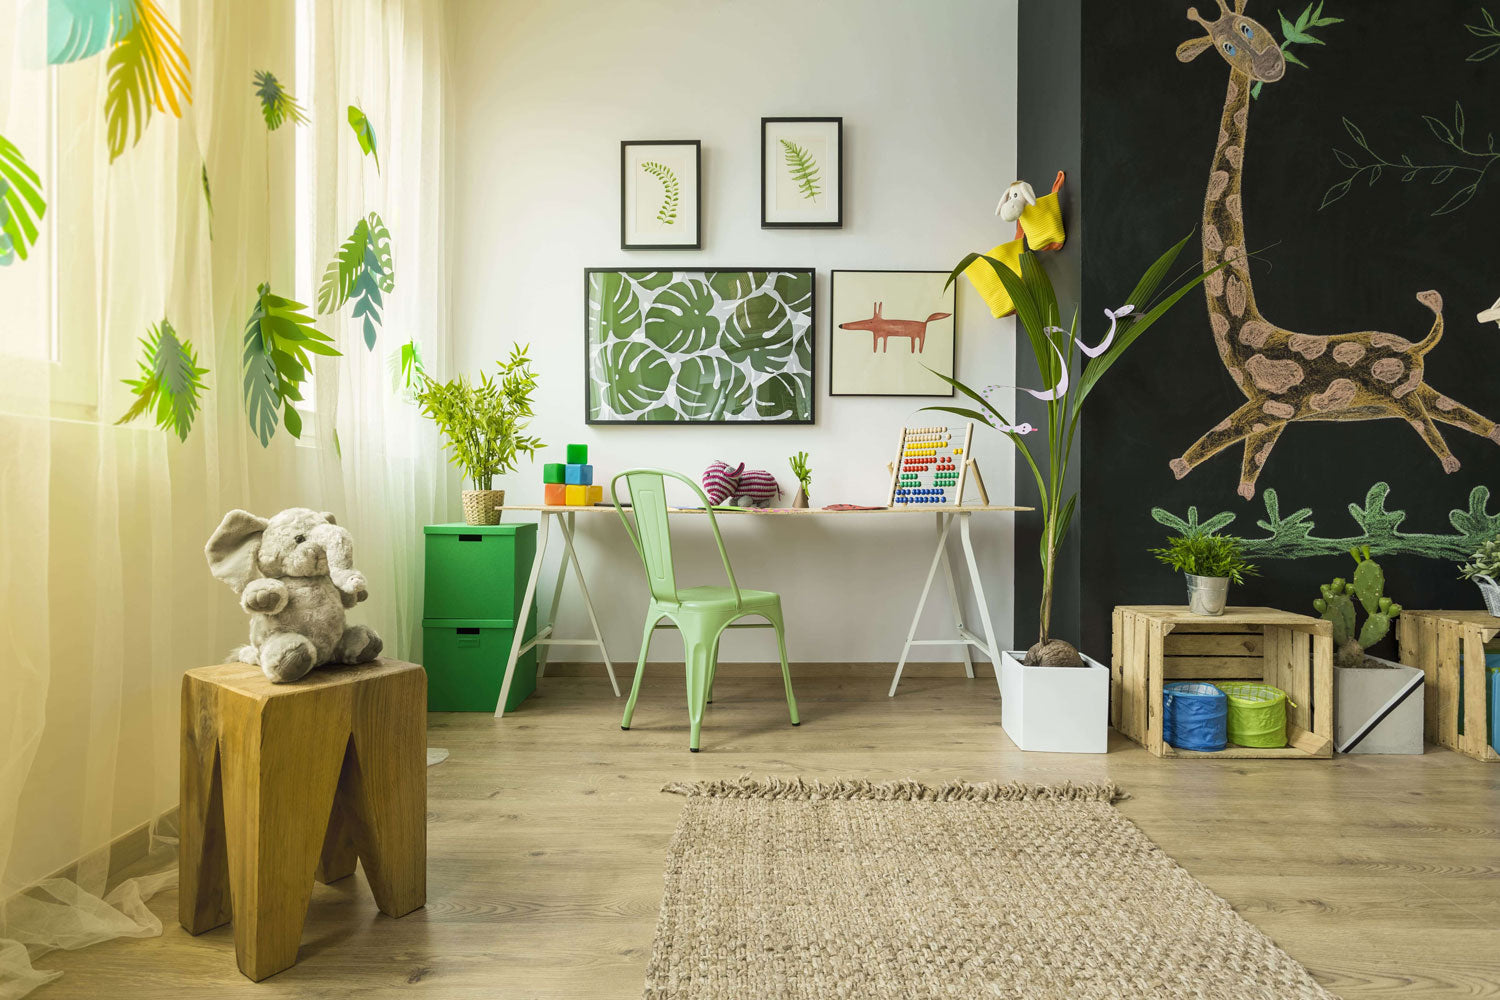 Ideas to Spice Up the Kids' Room!